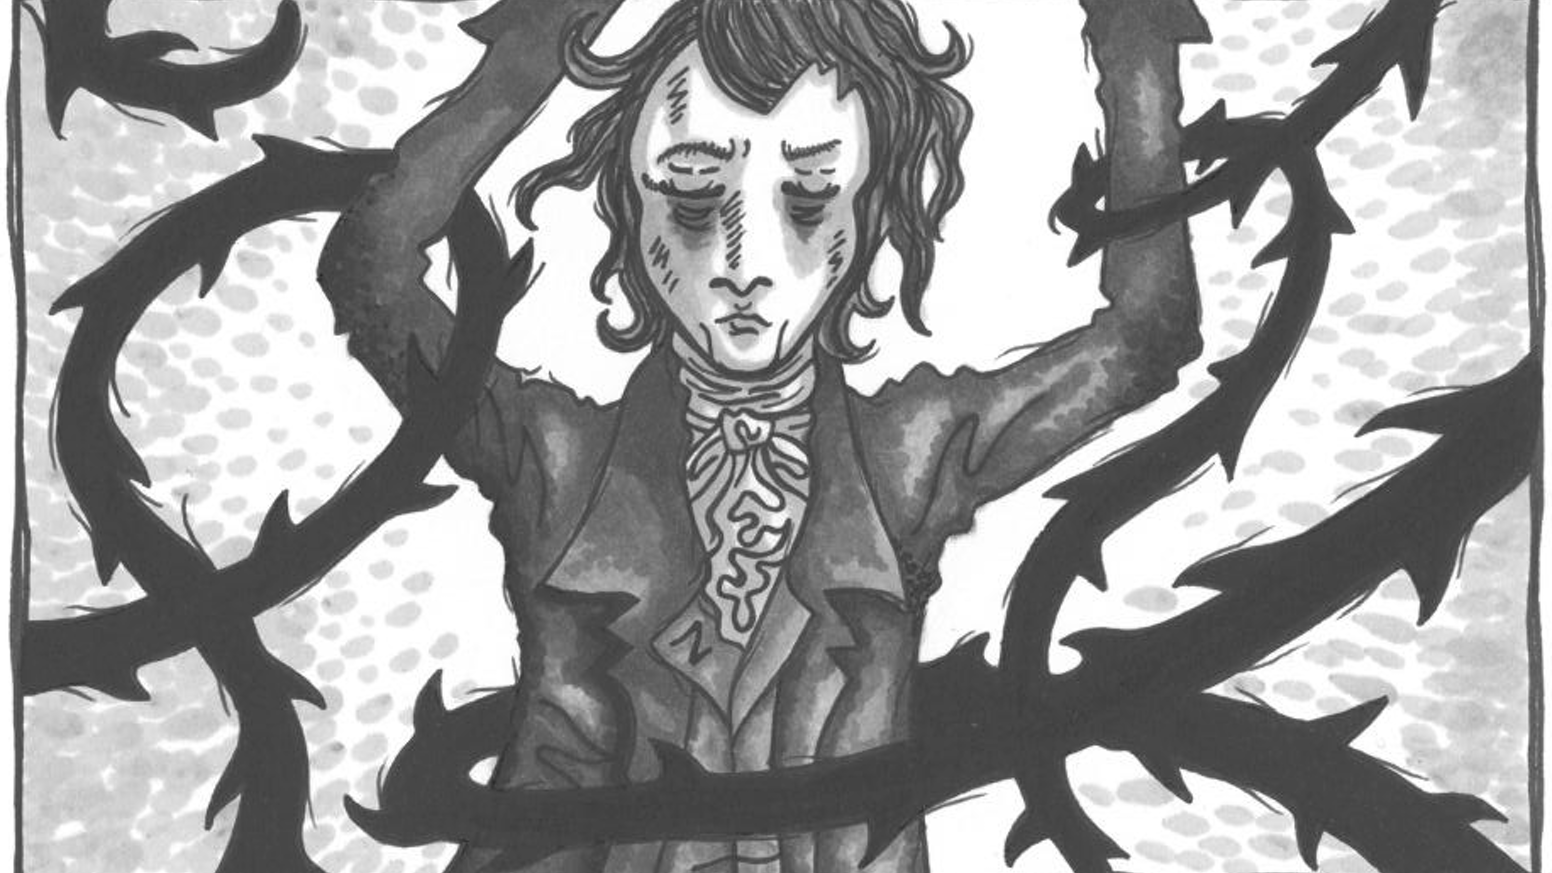 A graphic novel about the poet-painter William Blake and The Ghost of a Flea that is said to have haunted him.